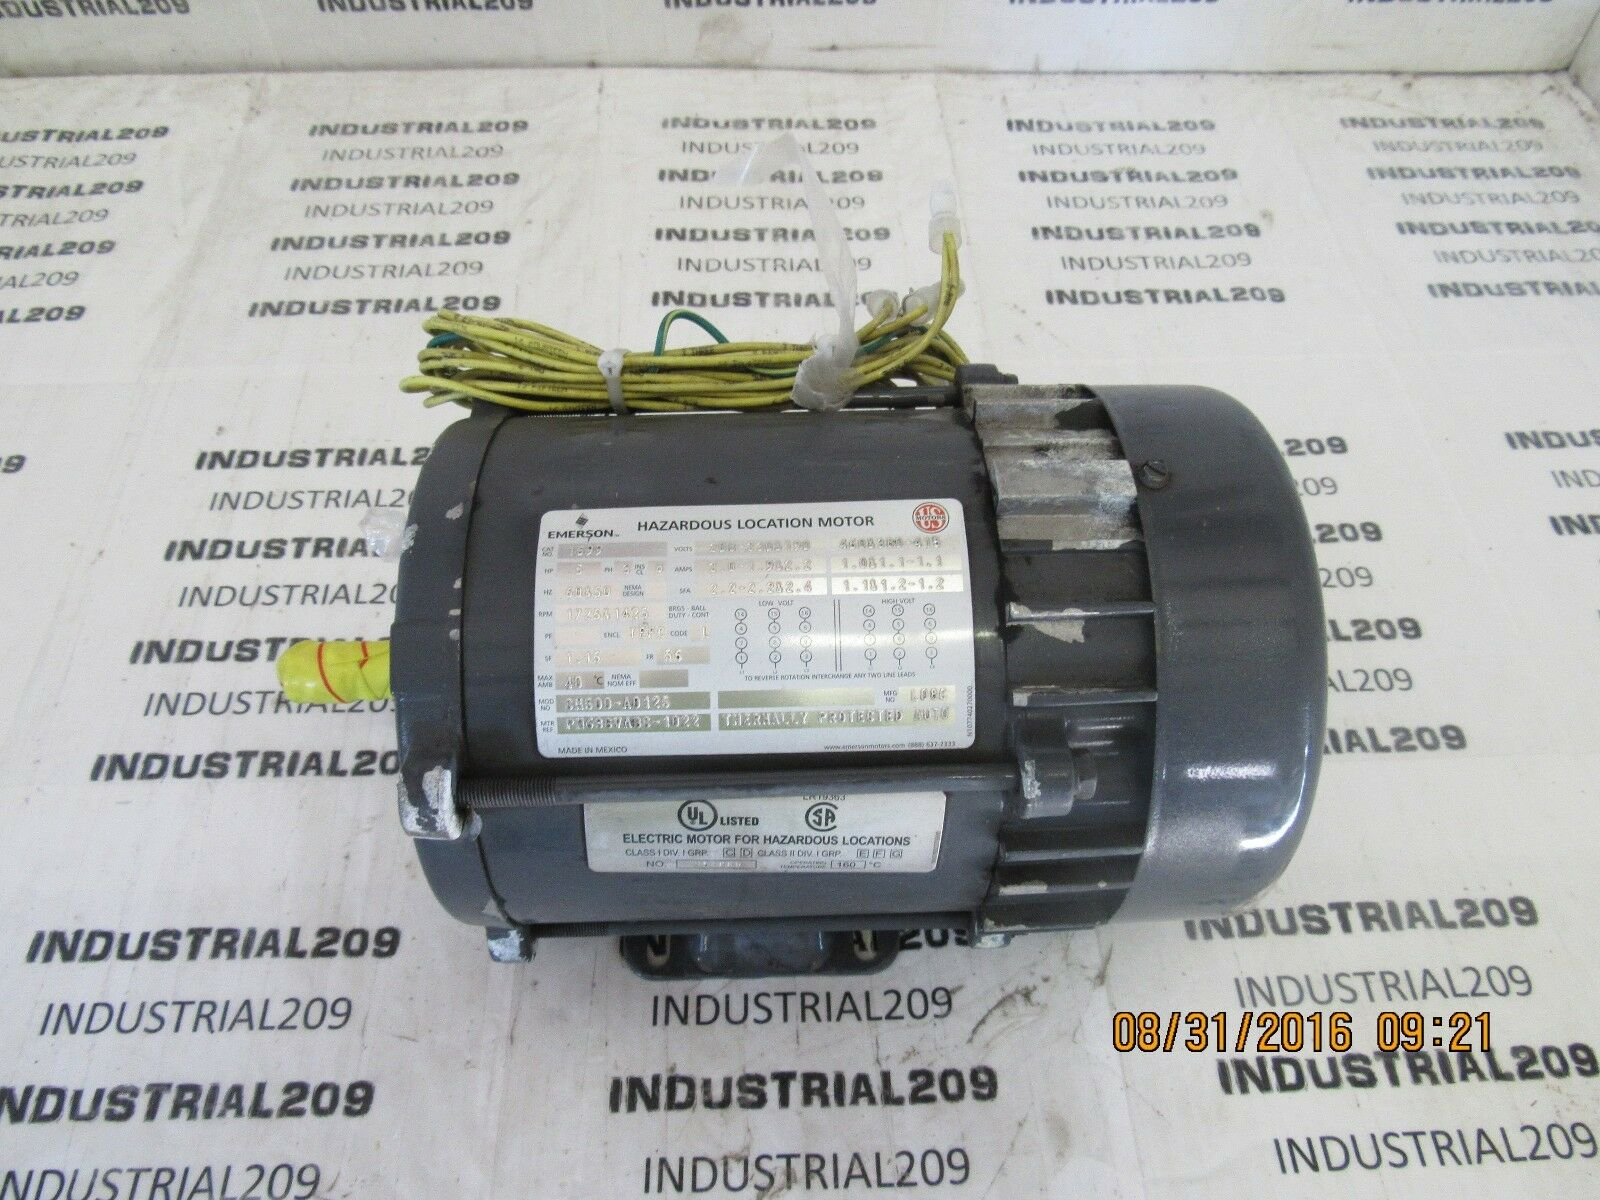 Emerson US Motors Cm500-a0125 Motor 1/2 HP 1725 RPM Ph3 FR 56